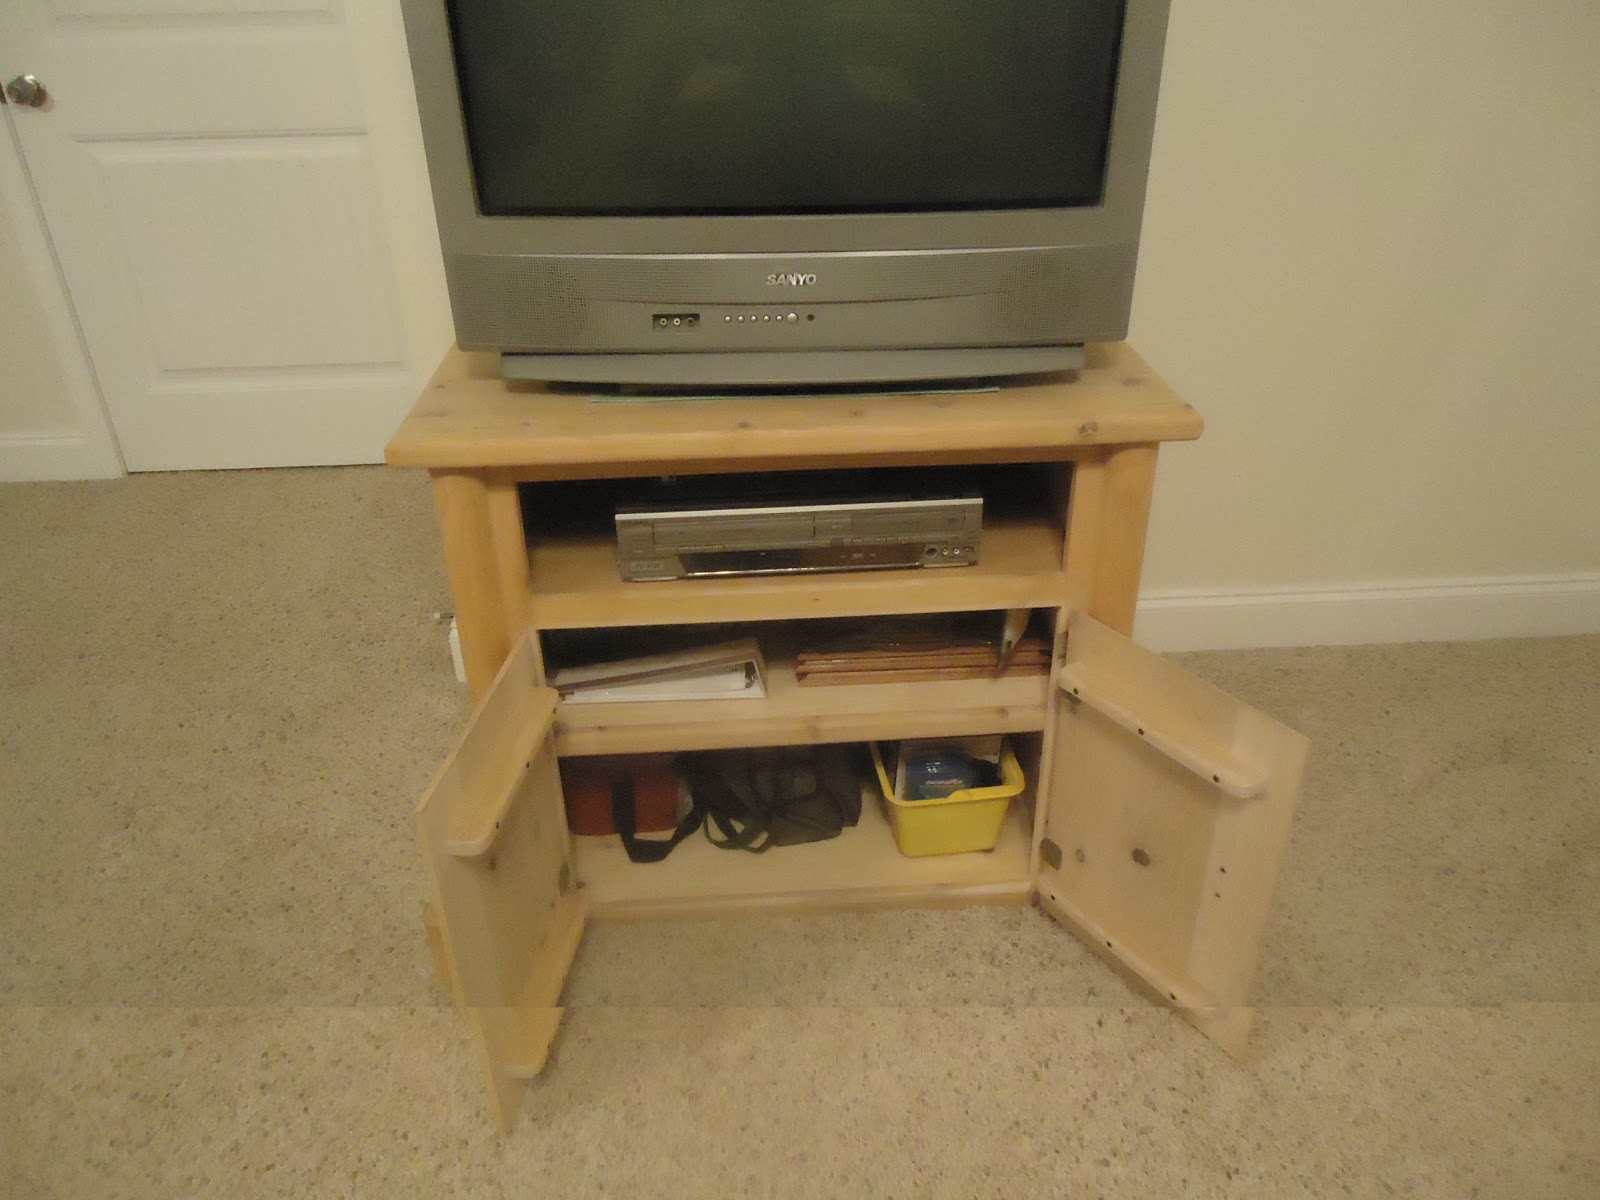 Marvelous photograph of  Tv Stand Plans Download home office design plans – woodguides with #8F703C color and 1600x1200 pixels